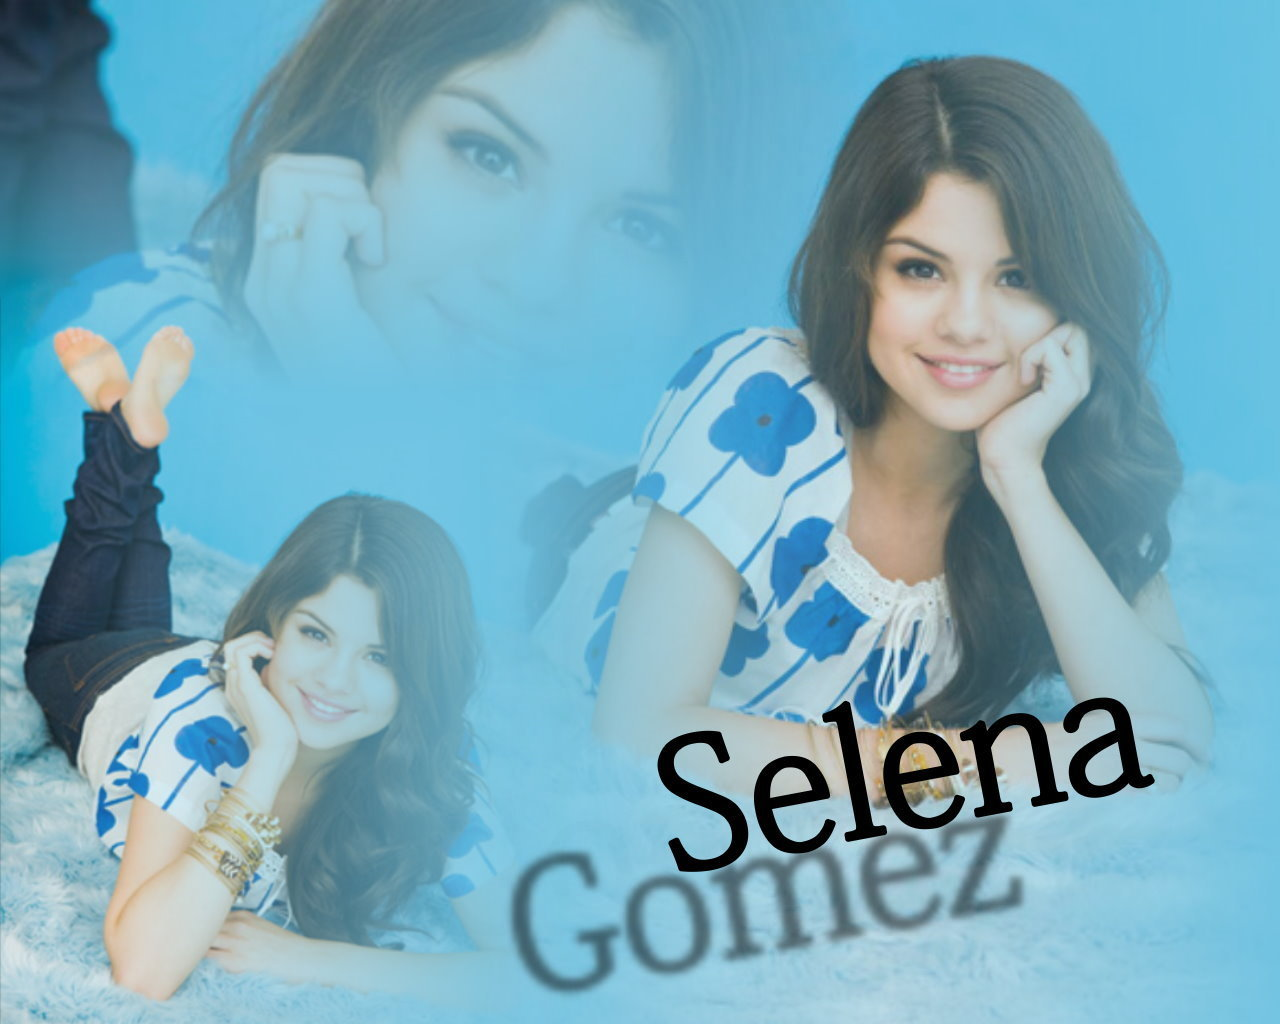 selena gomez wallpaper   Selena Gomez Wallpaper 6770520 1280x1024